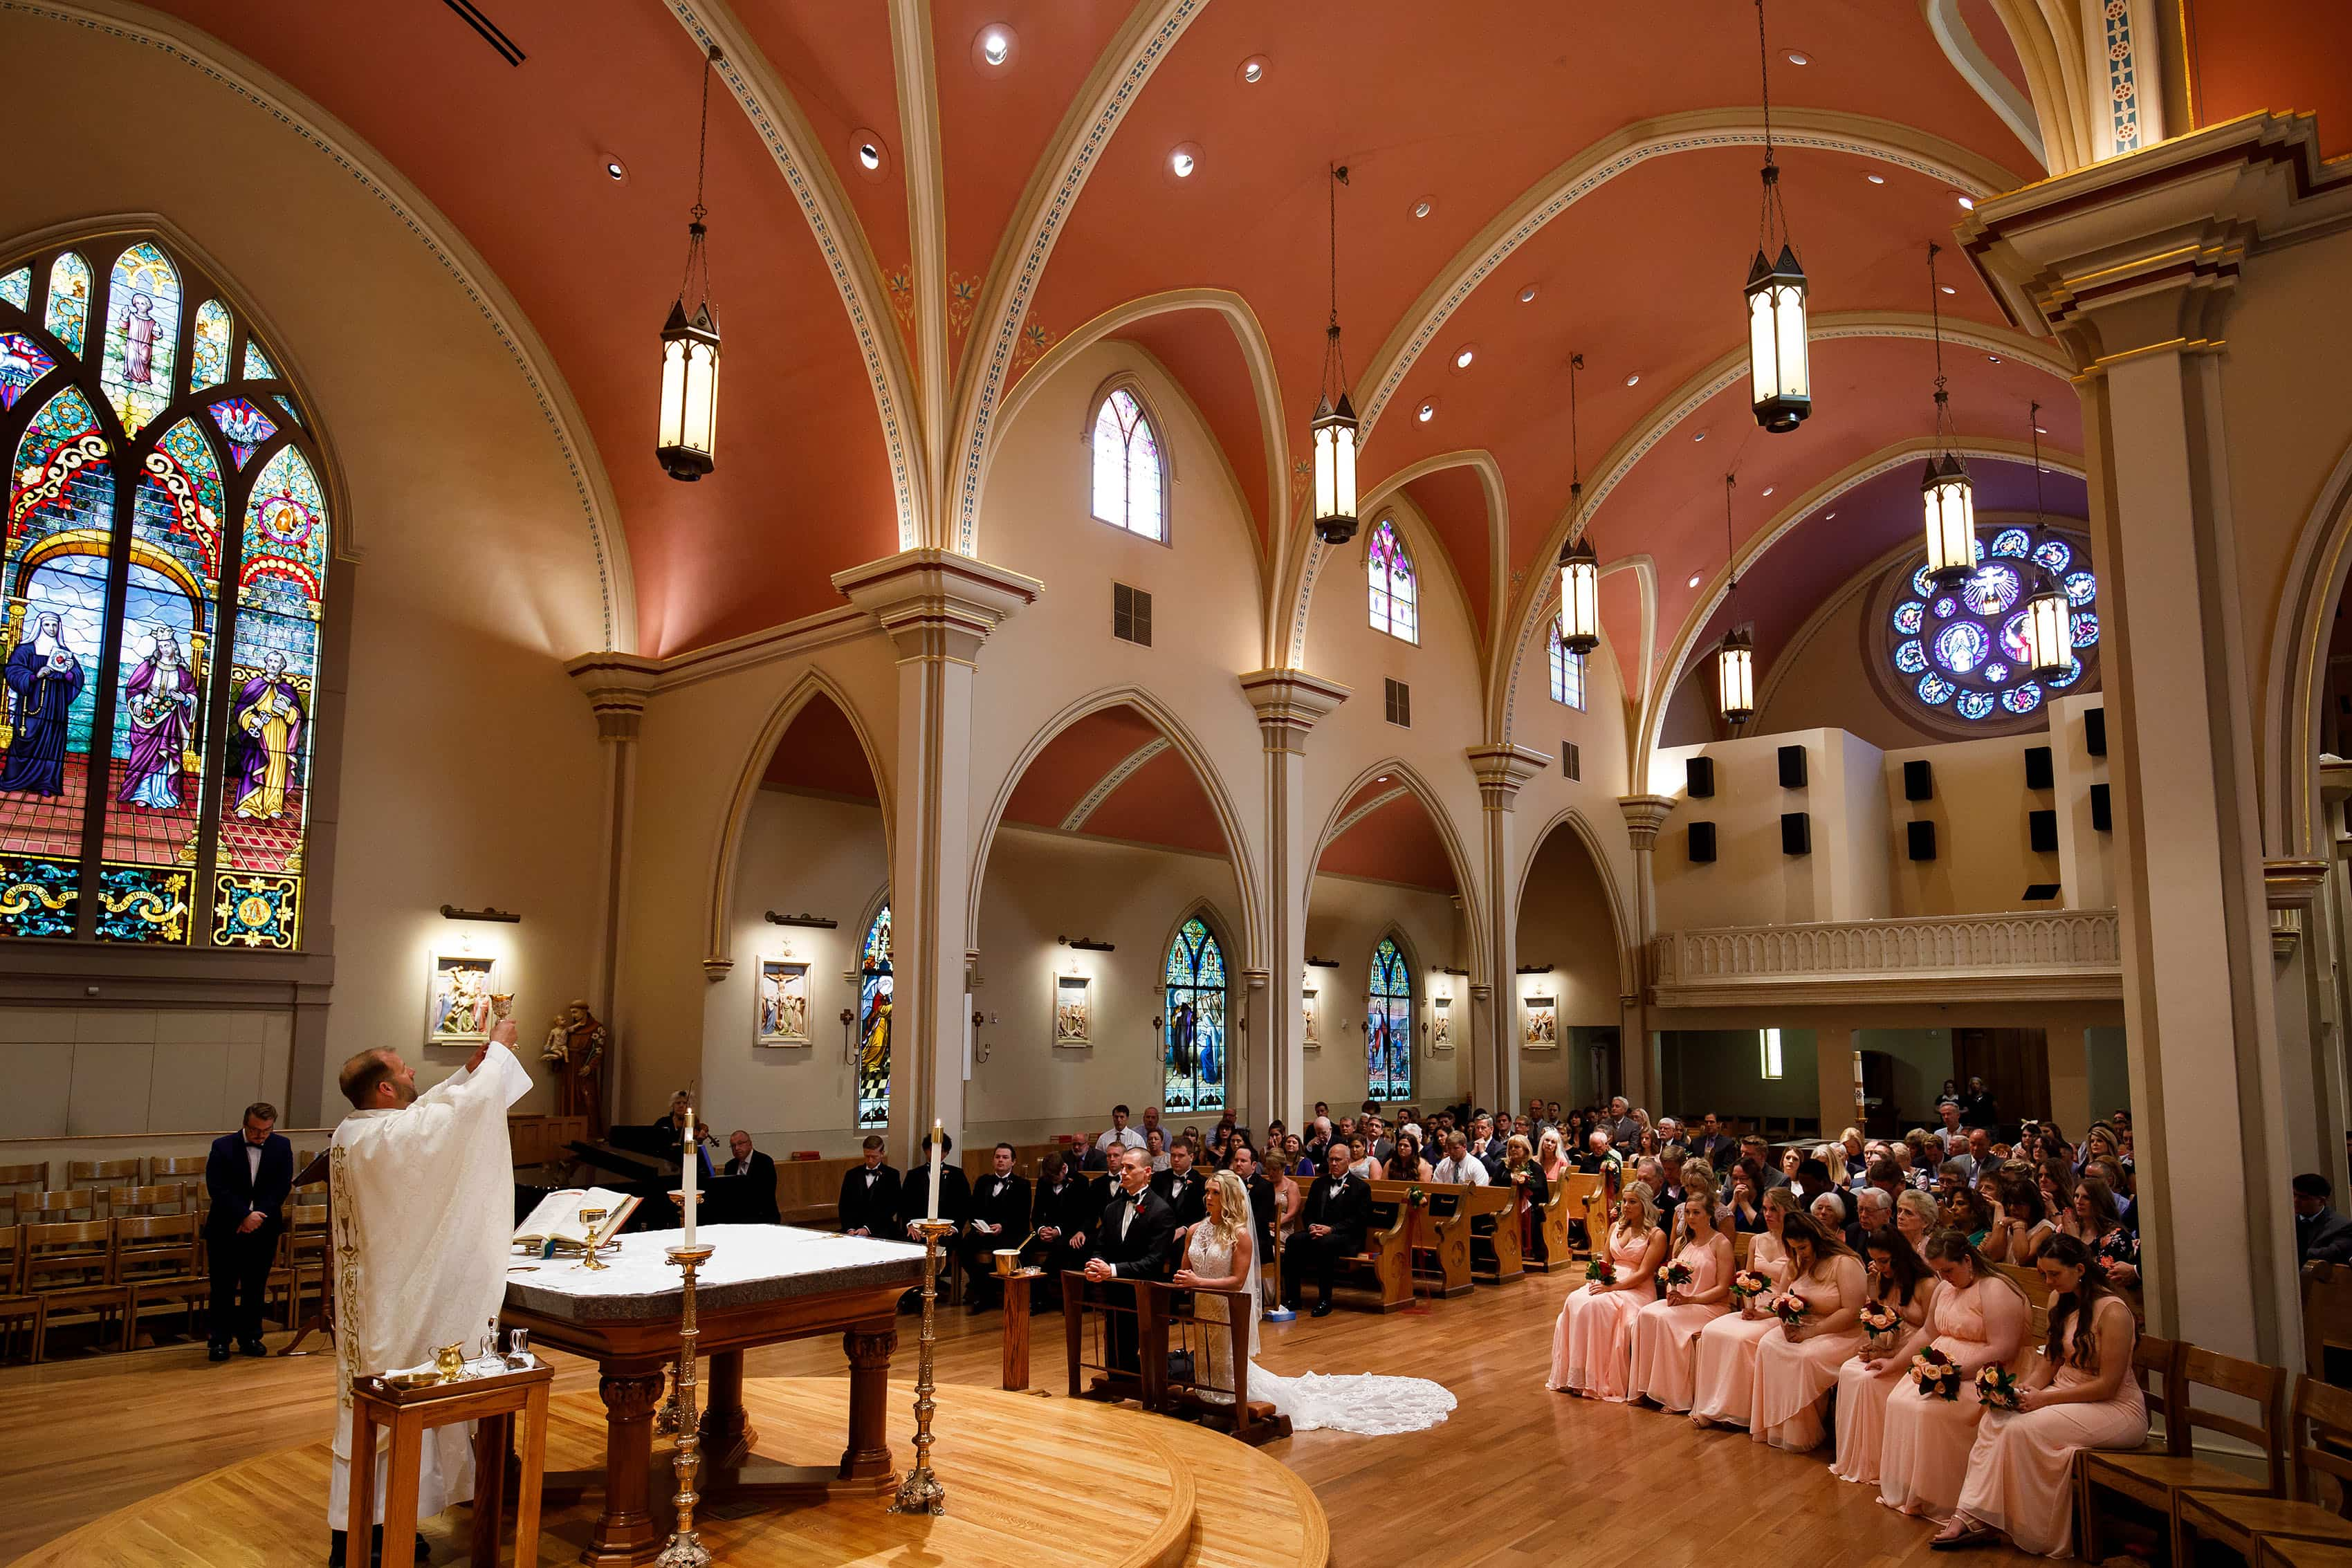 Wedding mass at St. Mary's Cathedral in Colorado Springs